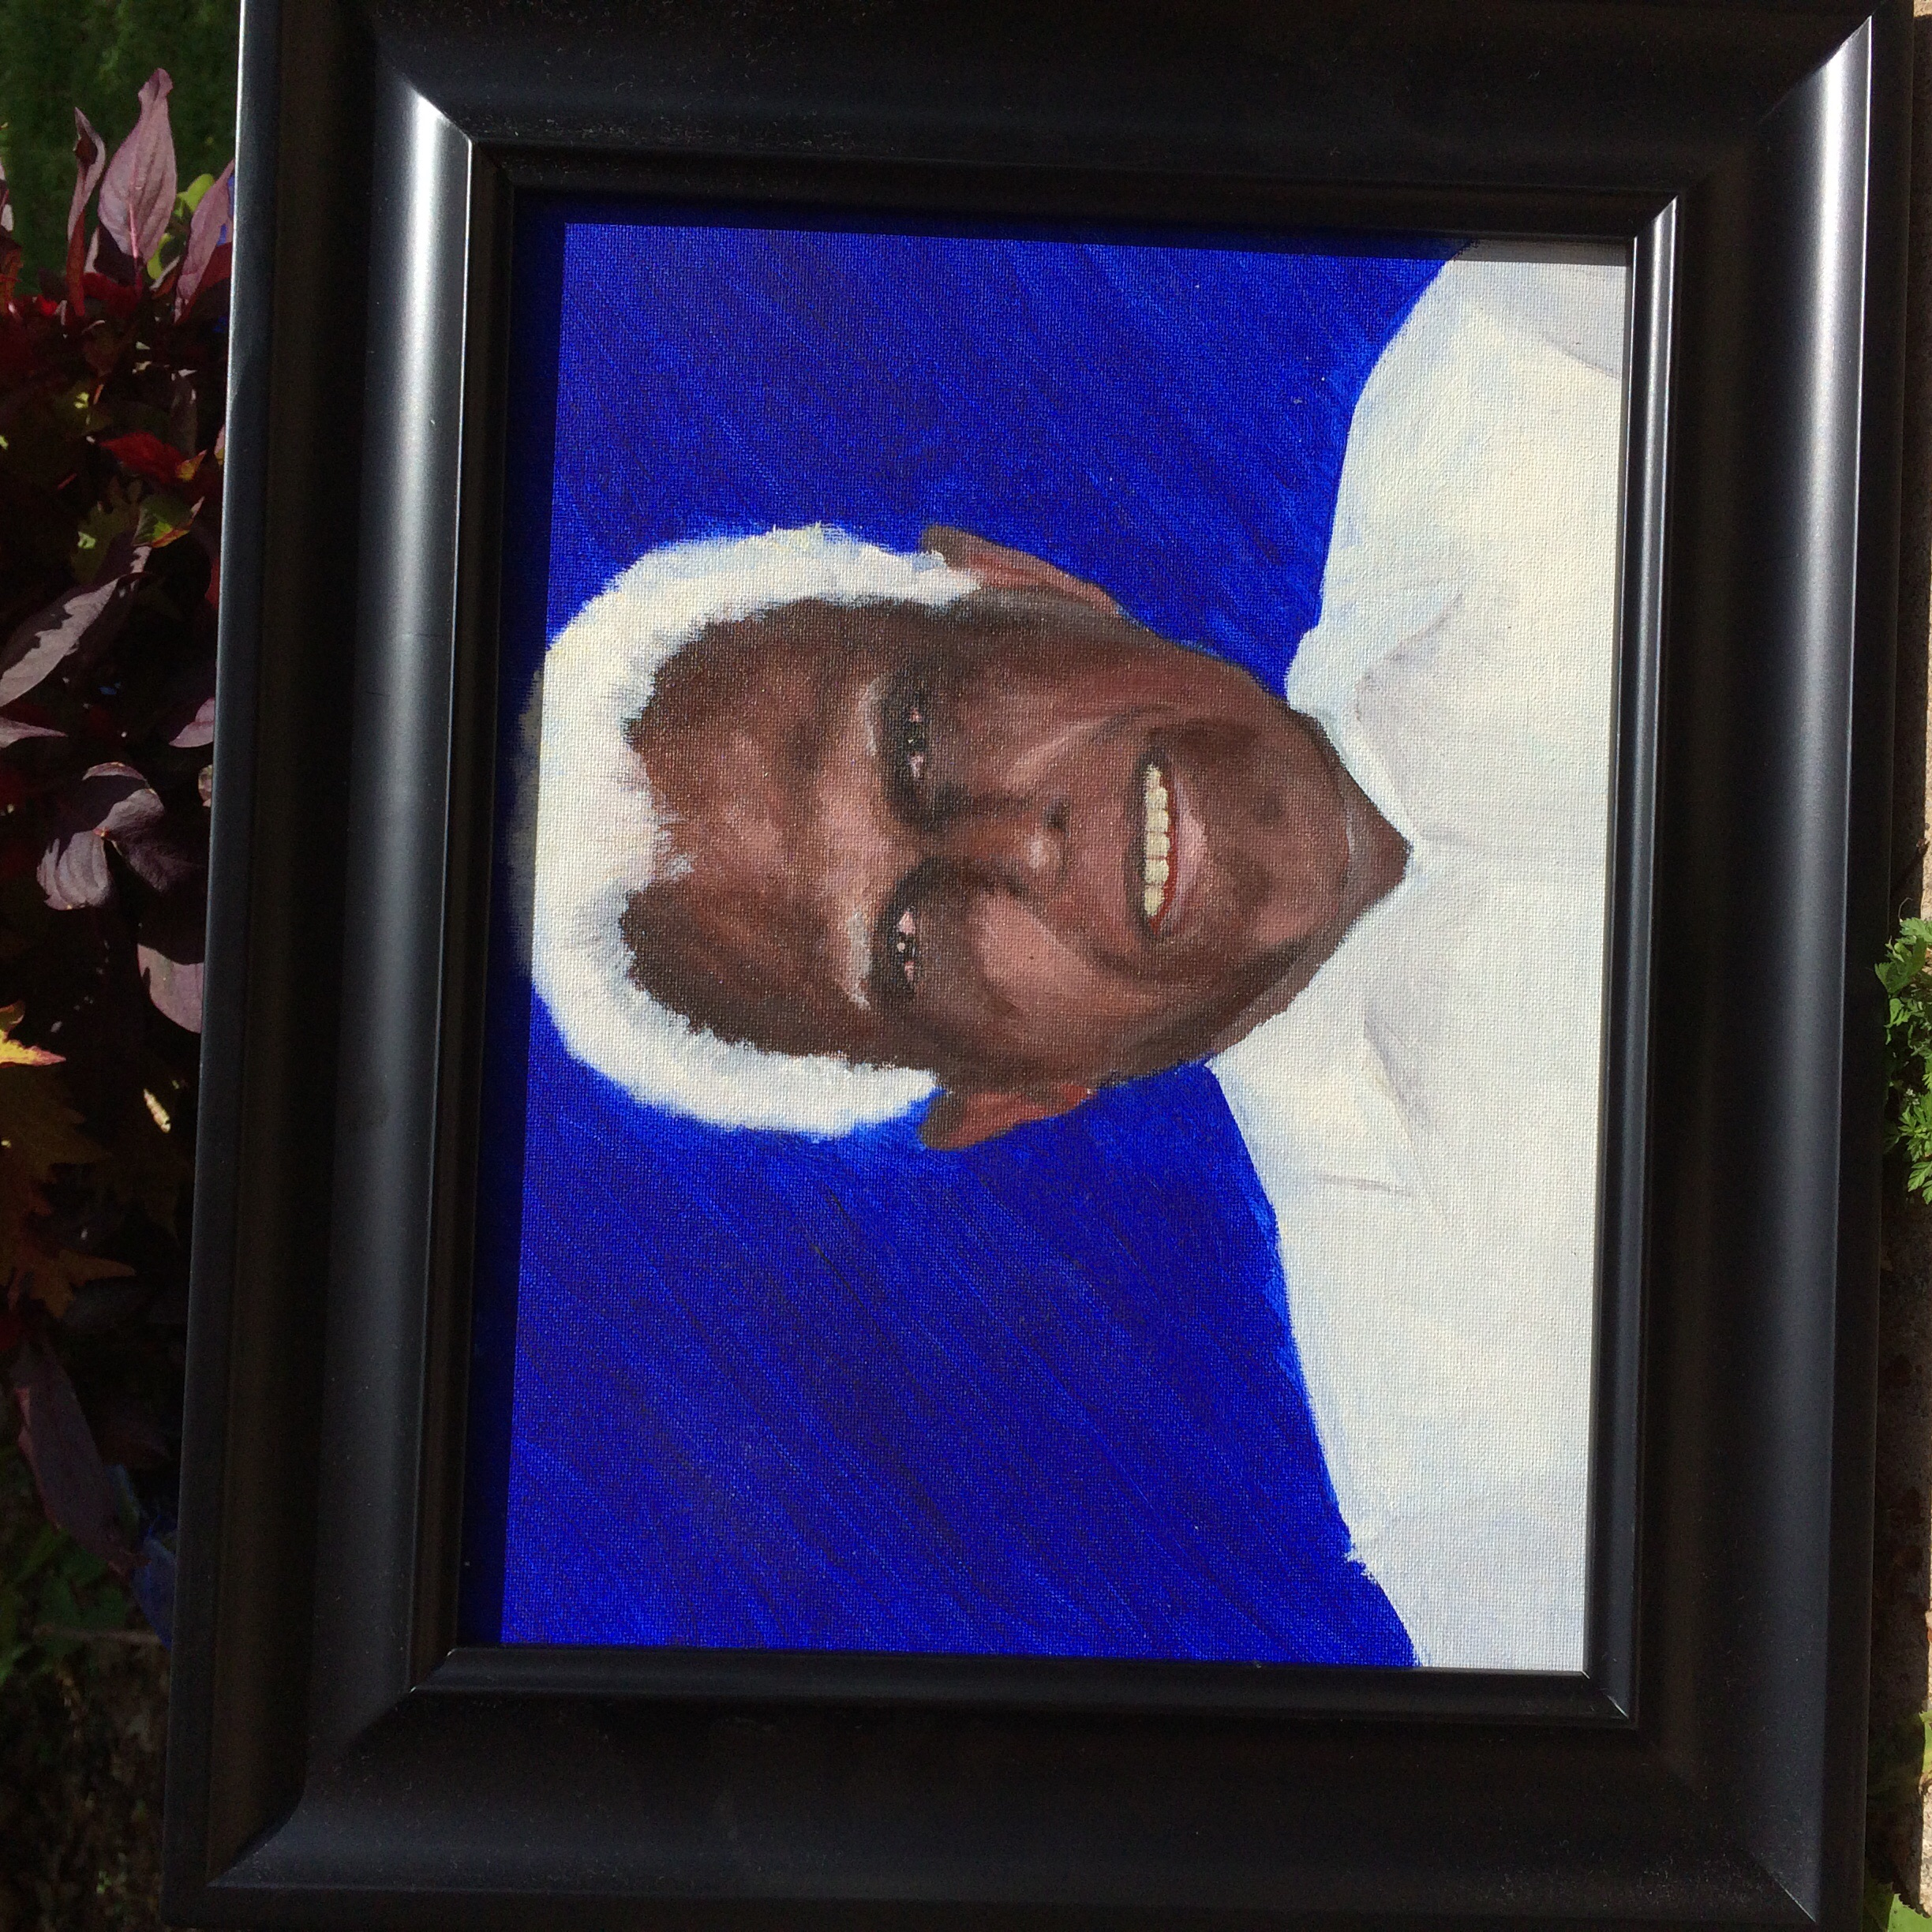 Alkyd portrait of my late grandfather, which I made in 2012